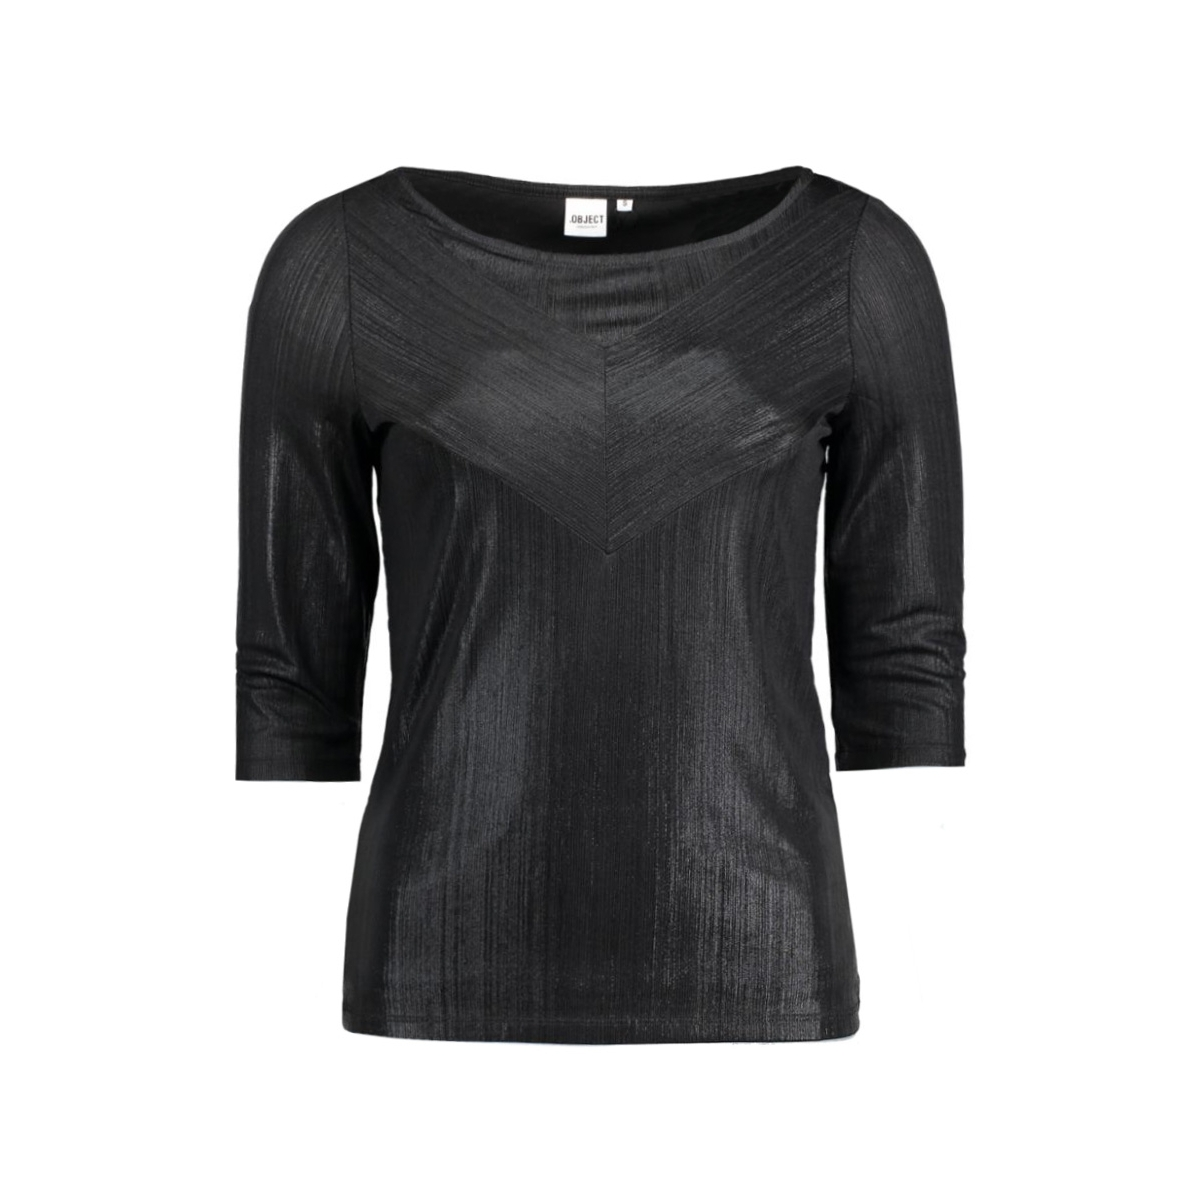 objlotus  3/4 top 23024040 object t-shirt black